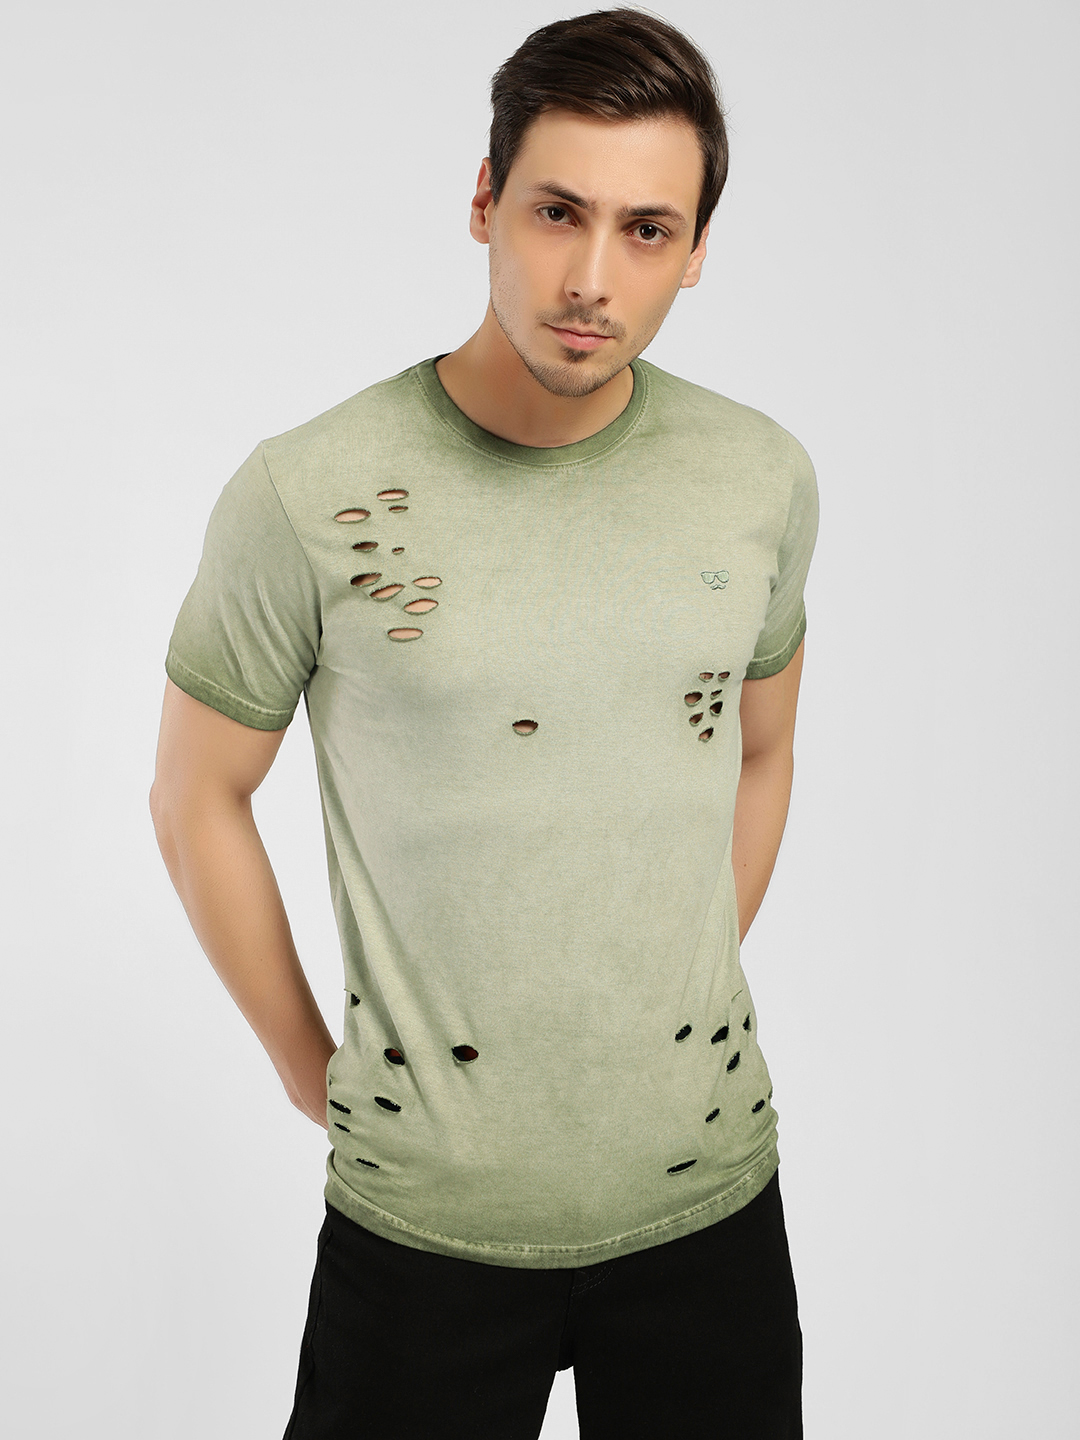 Garcon Green Lazer Cut Ombre Effect T-Shirt 1